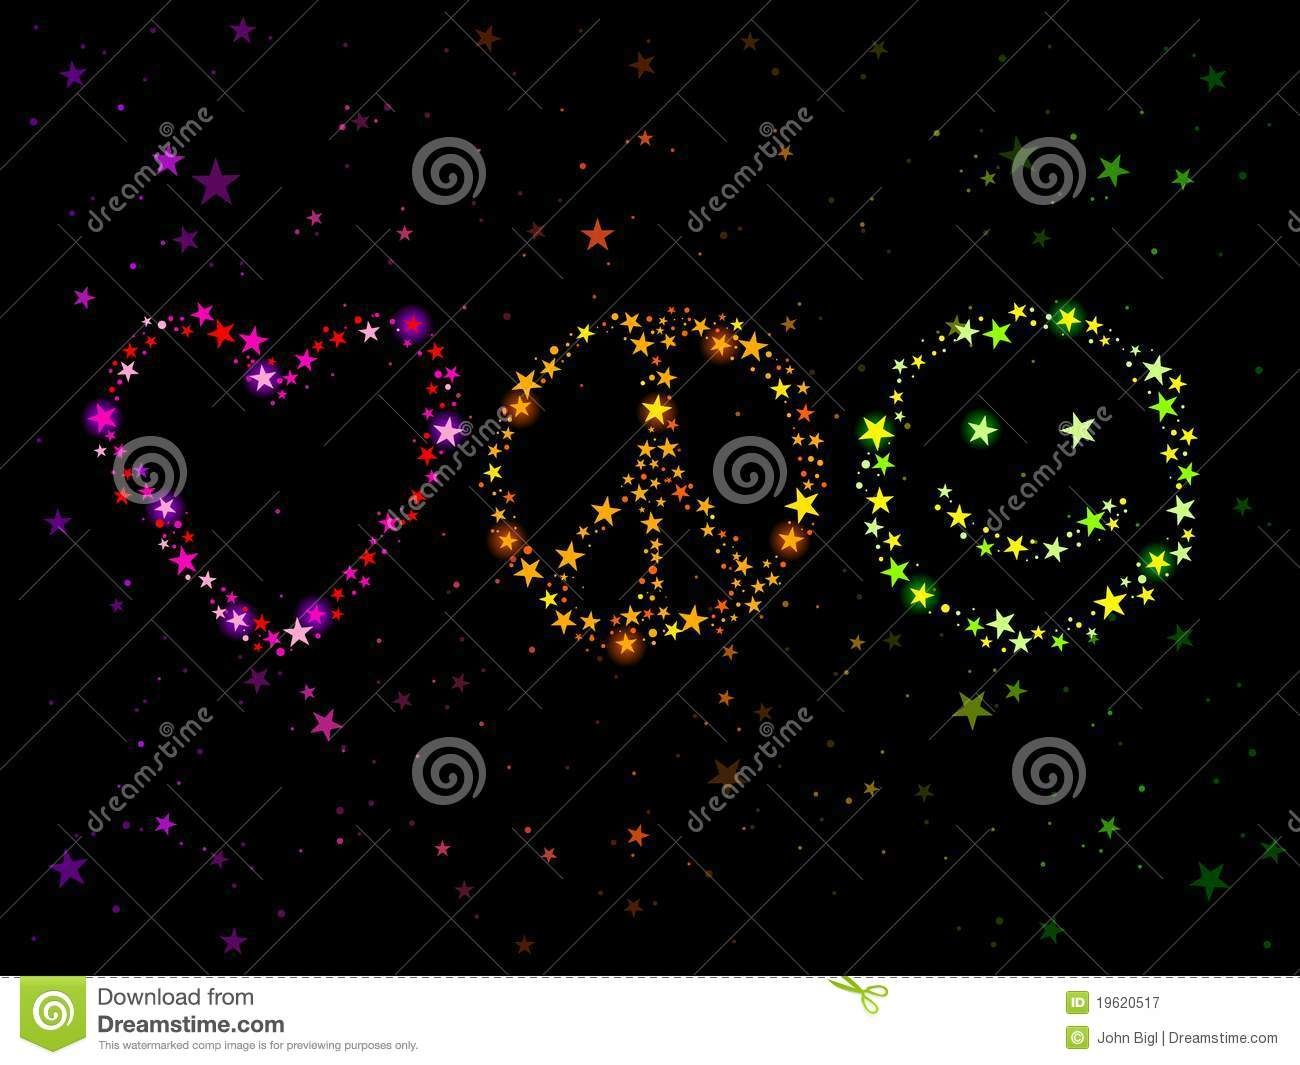 Peace Love And Happiness Icons Black White Quoteko Com Peace And Love Peace Love Happiness Peace